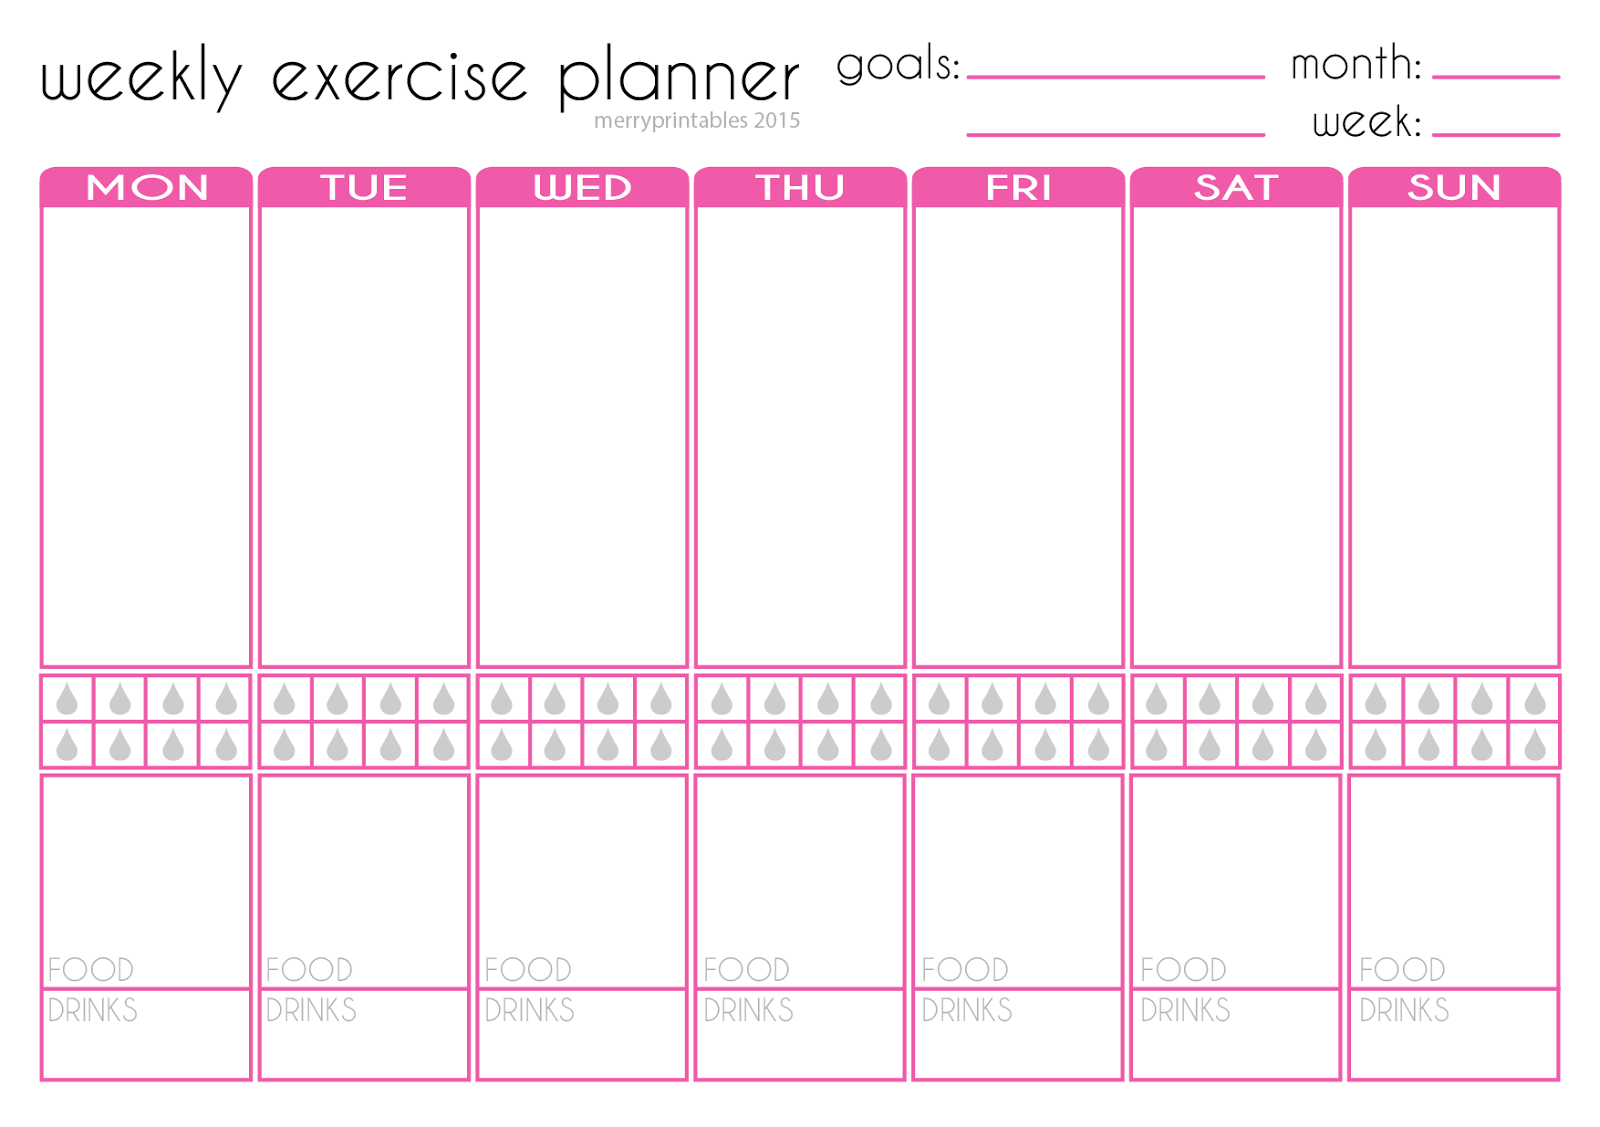 Merryprintables free weekly exercise planner for Weekly fitness plan template